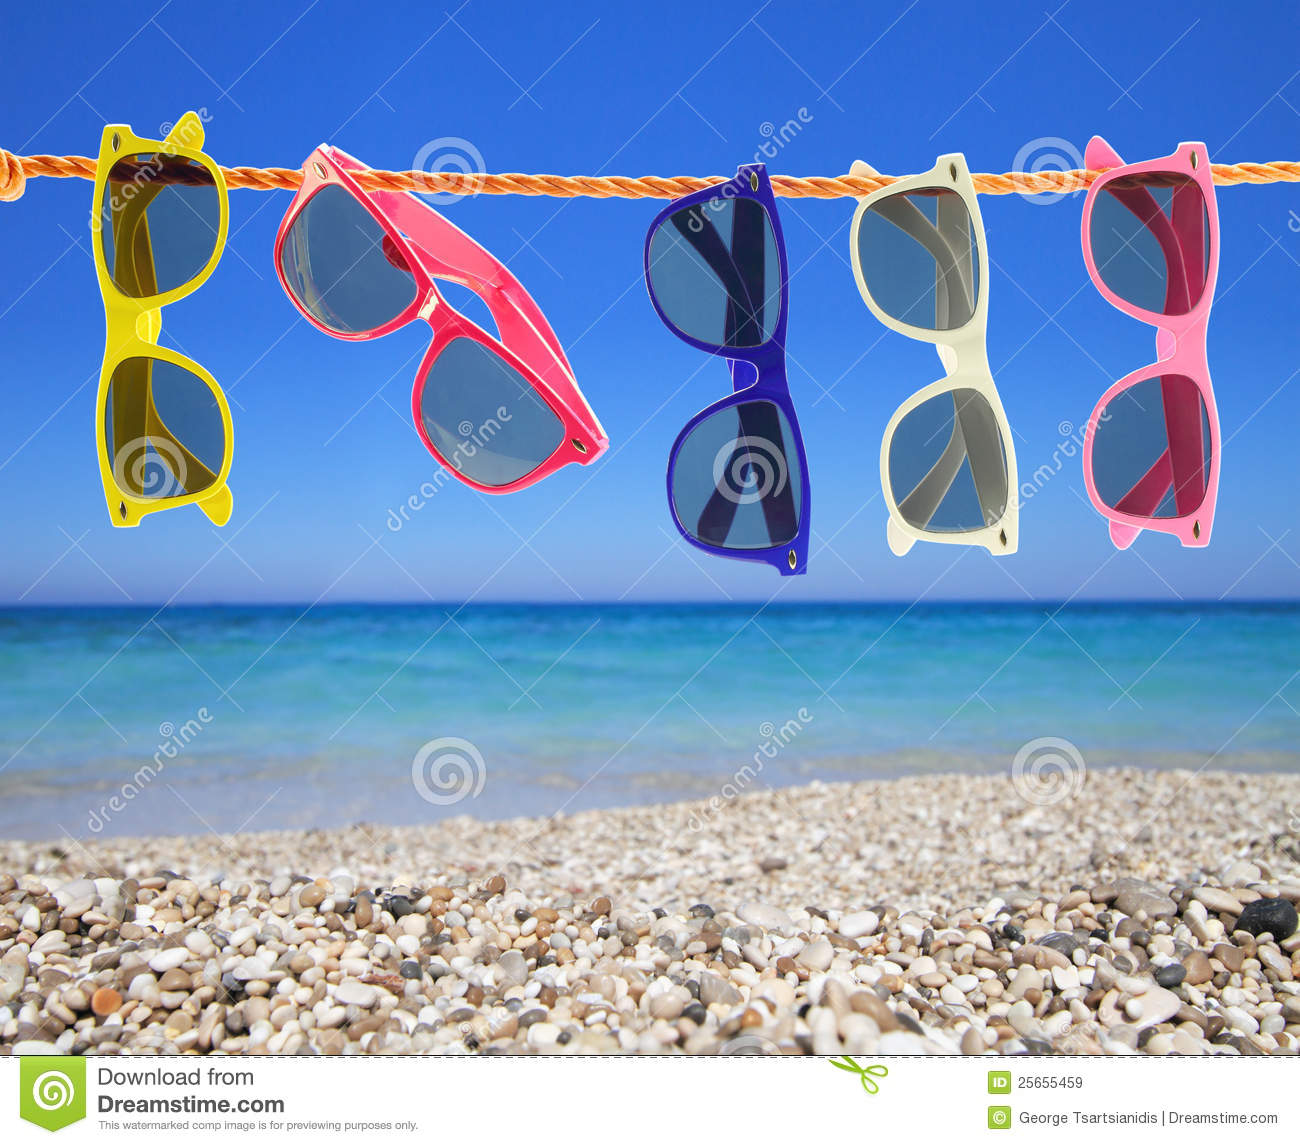 Sunglasses On The Beach Stock Image. Image Of Colored